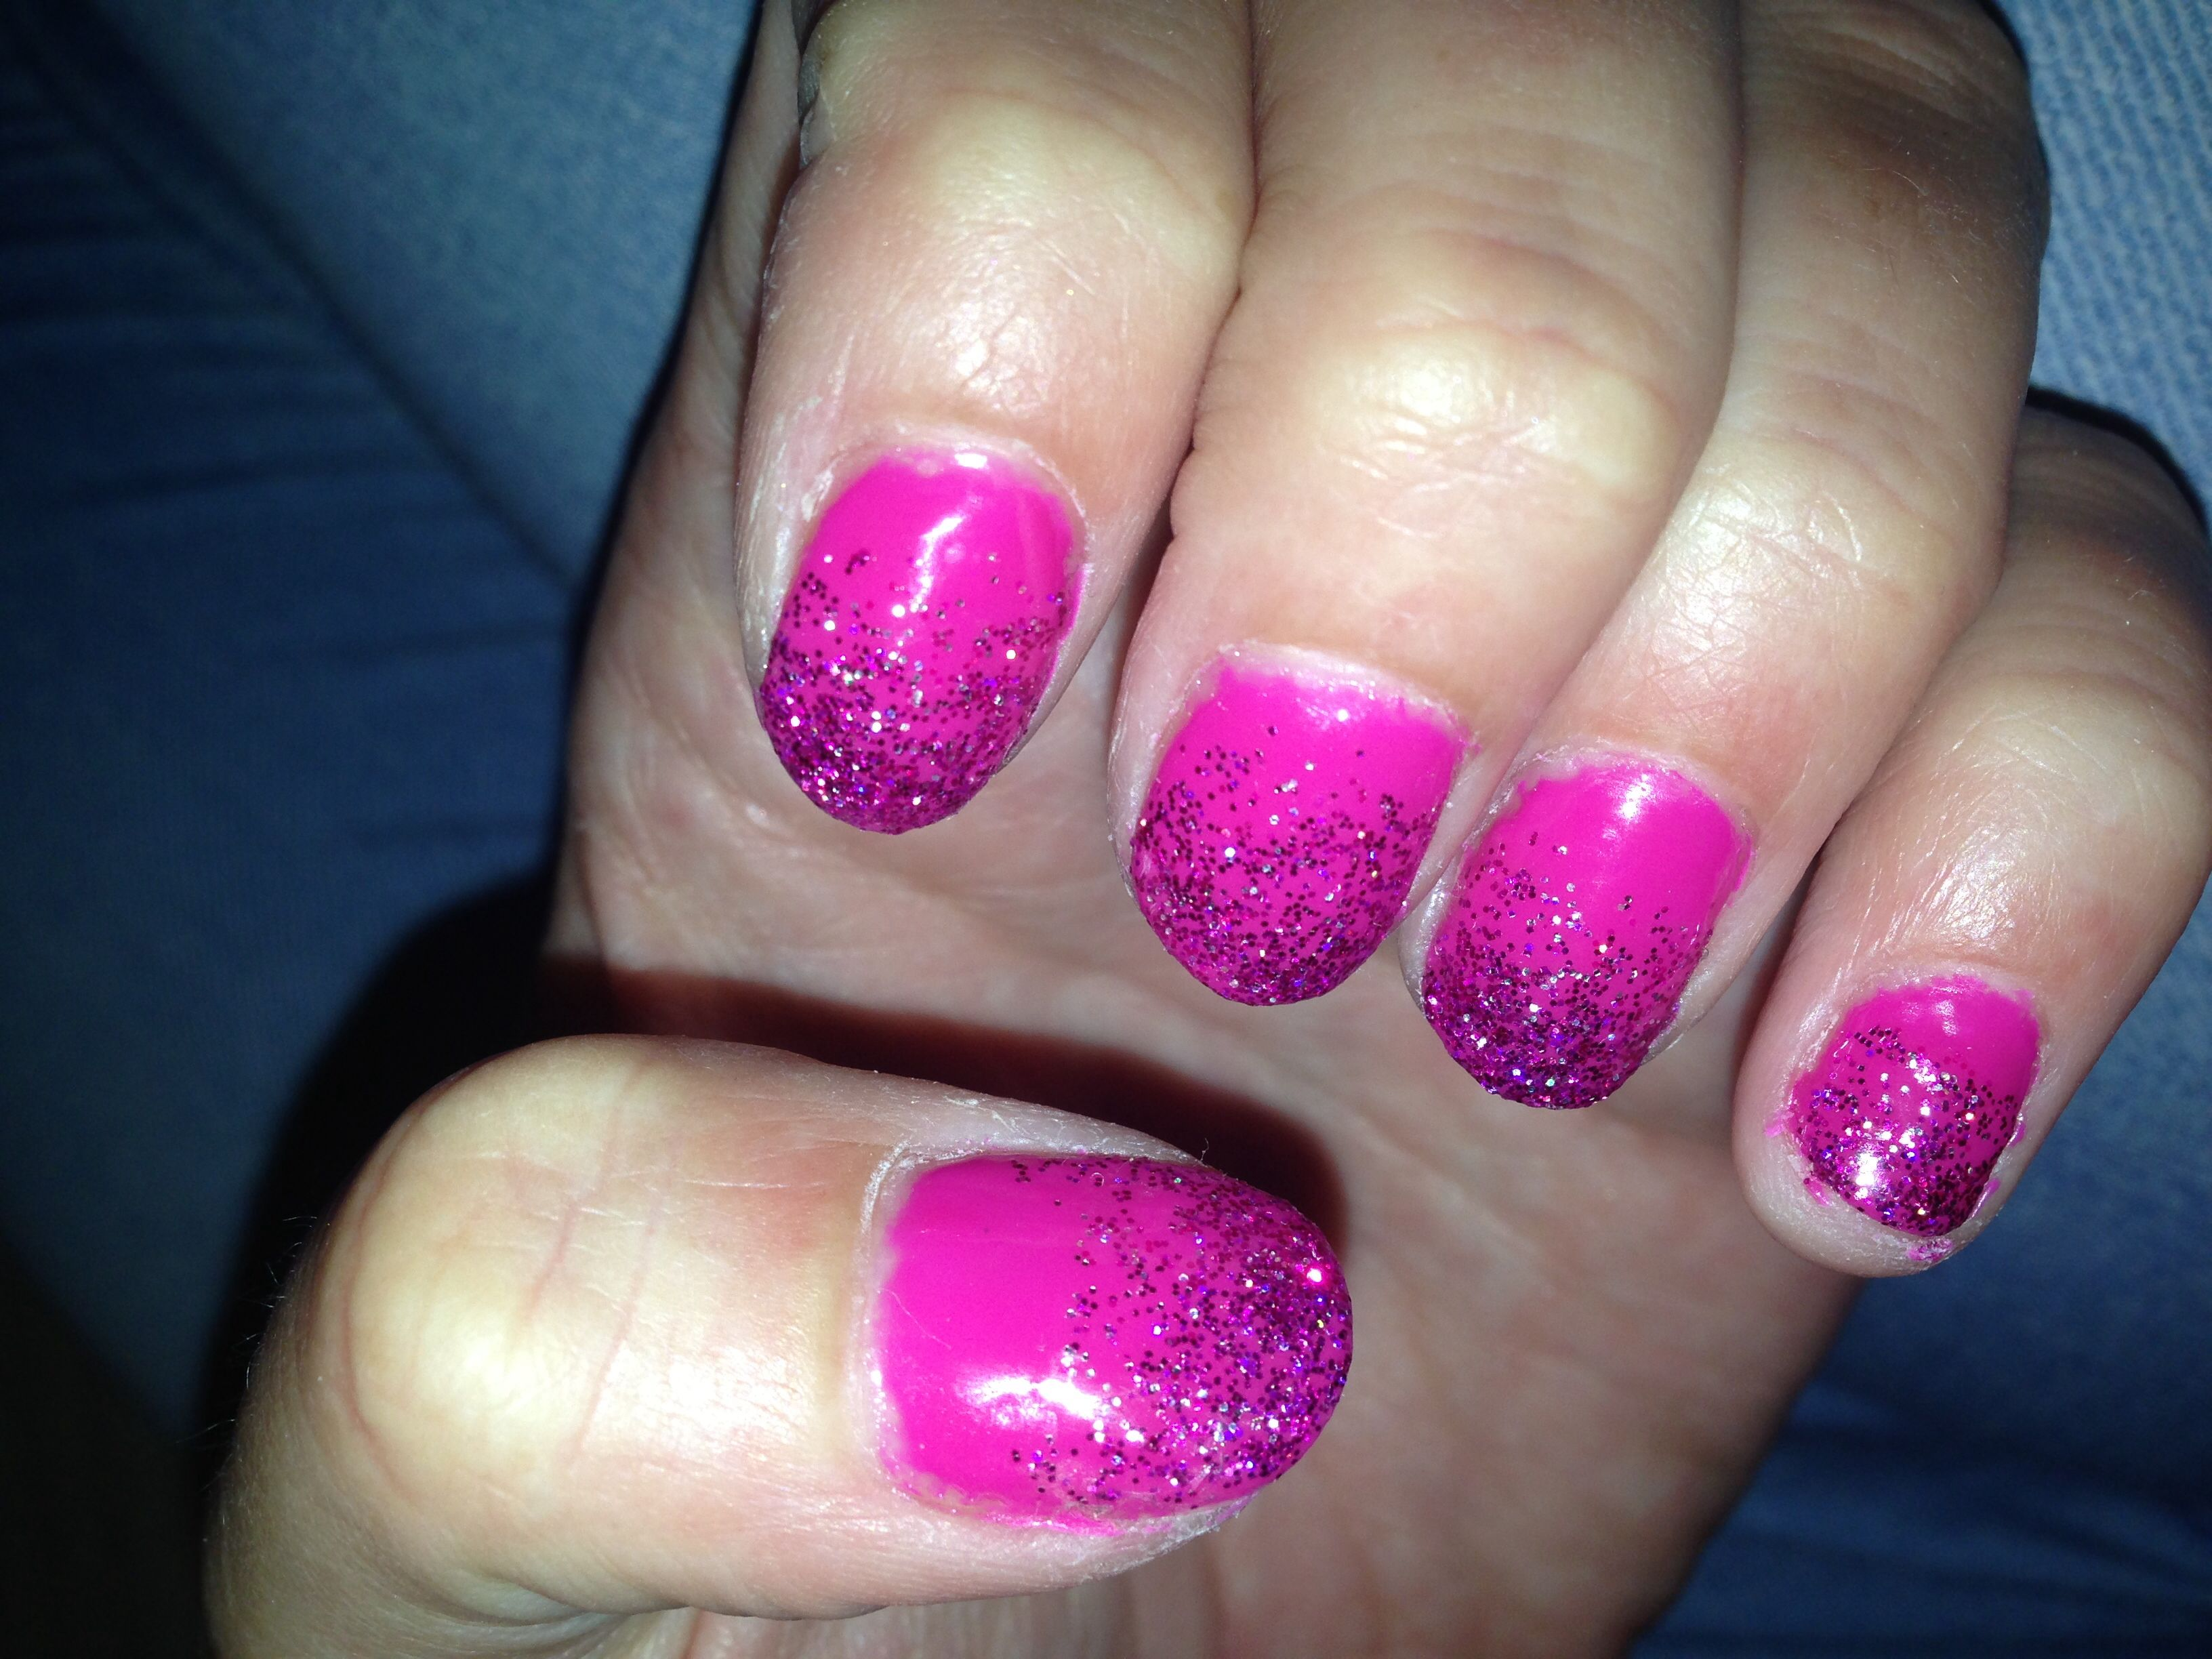 Pink with purple glitter dip fade gel nails | Nails | Pinterest ...